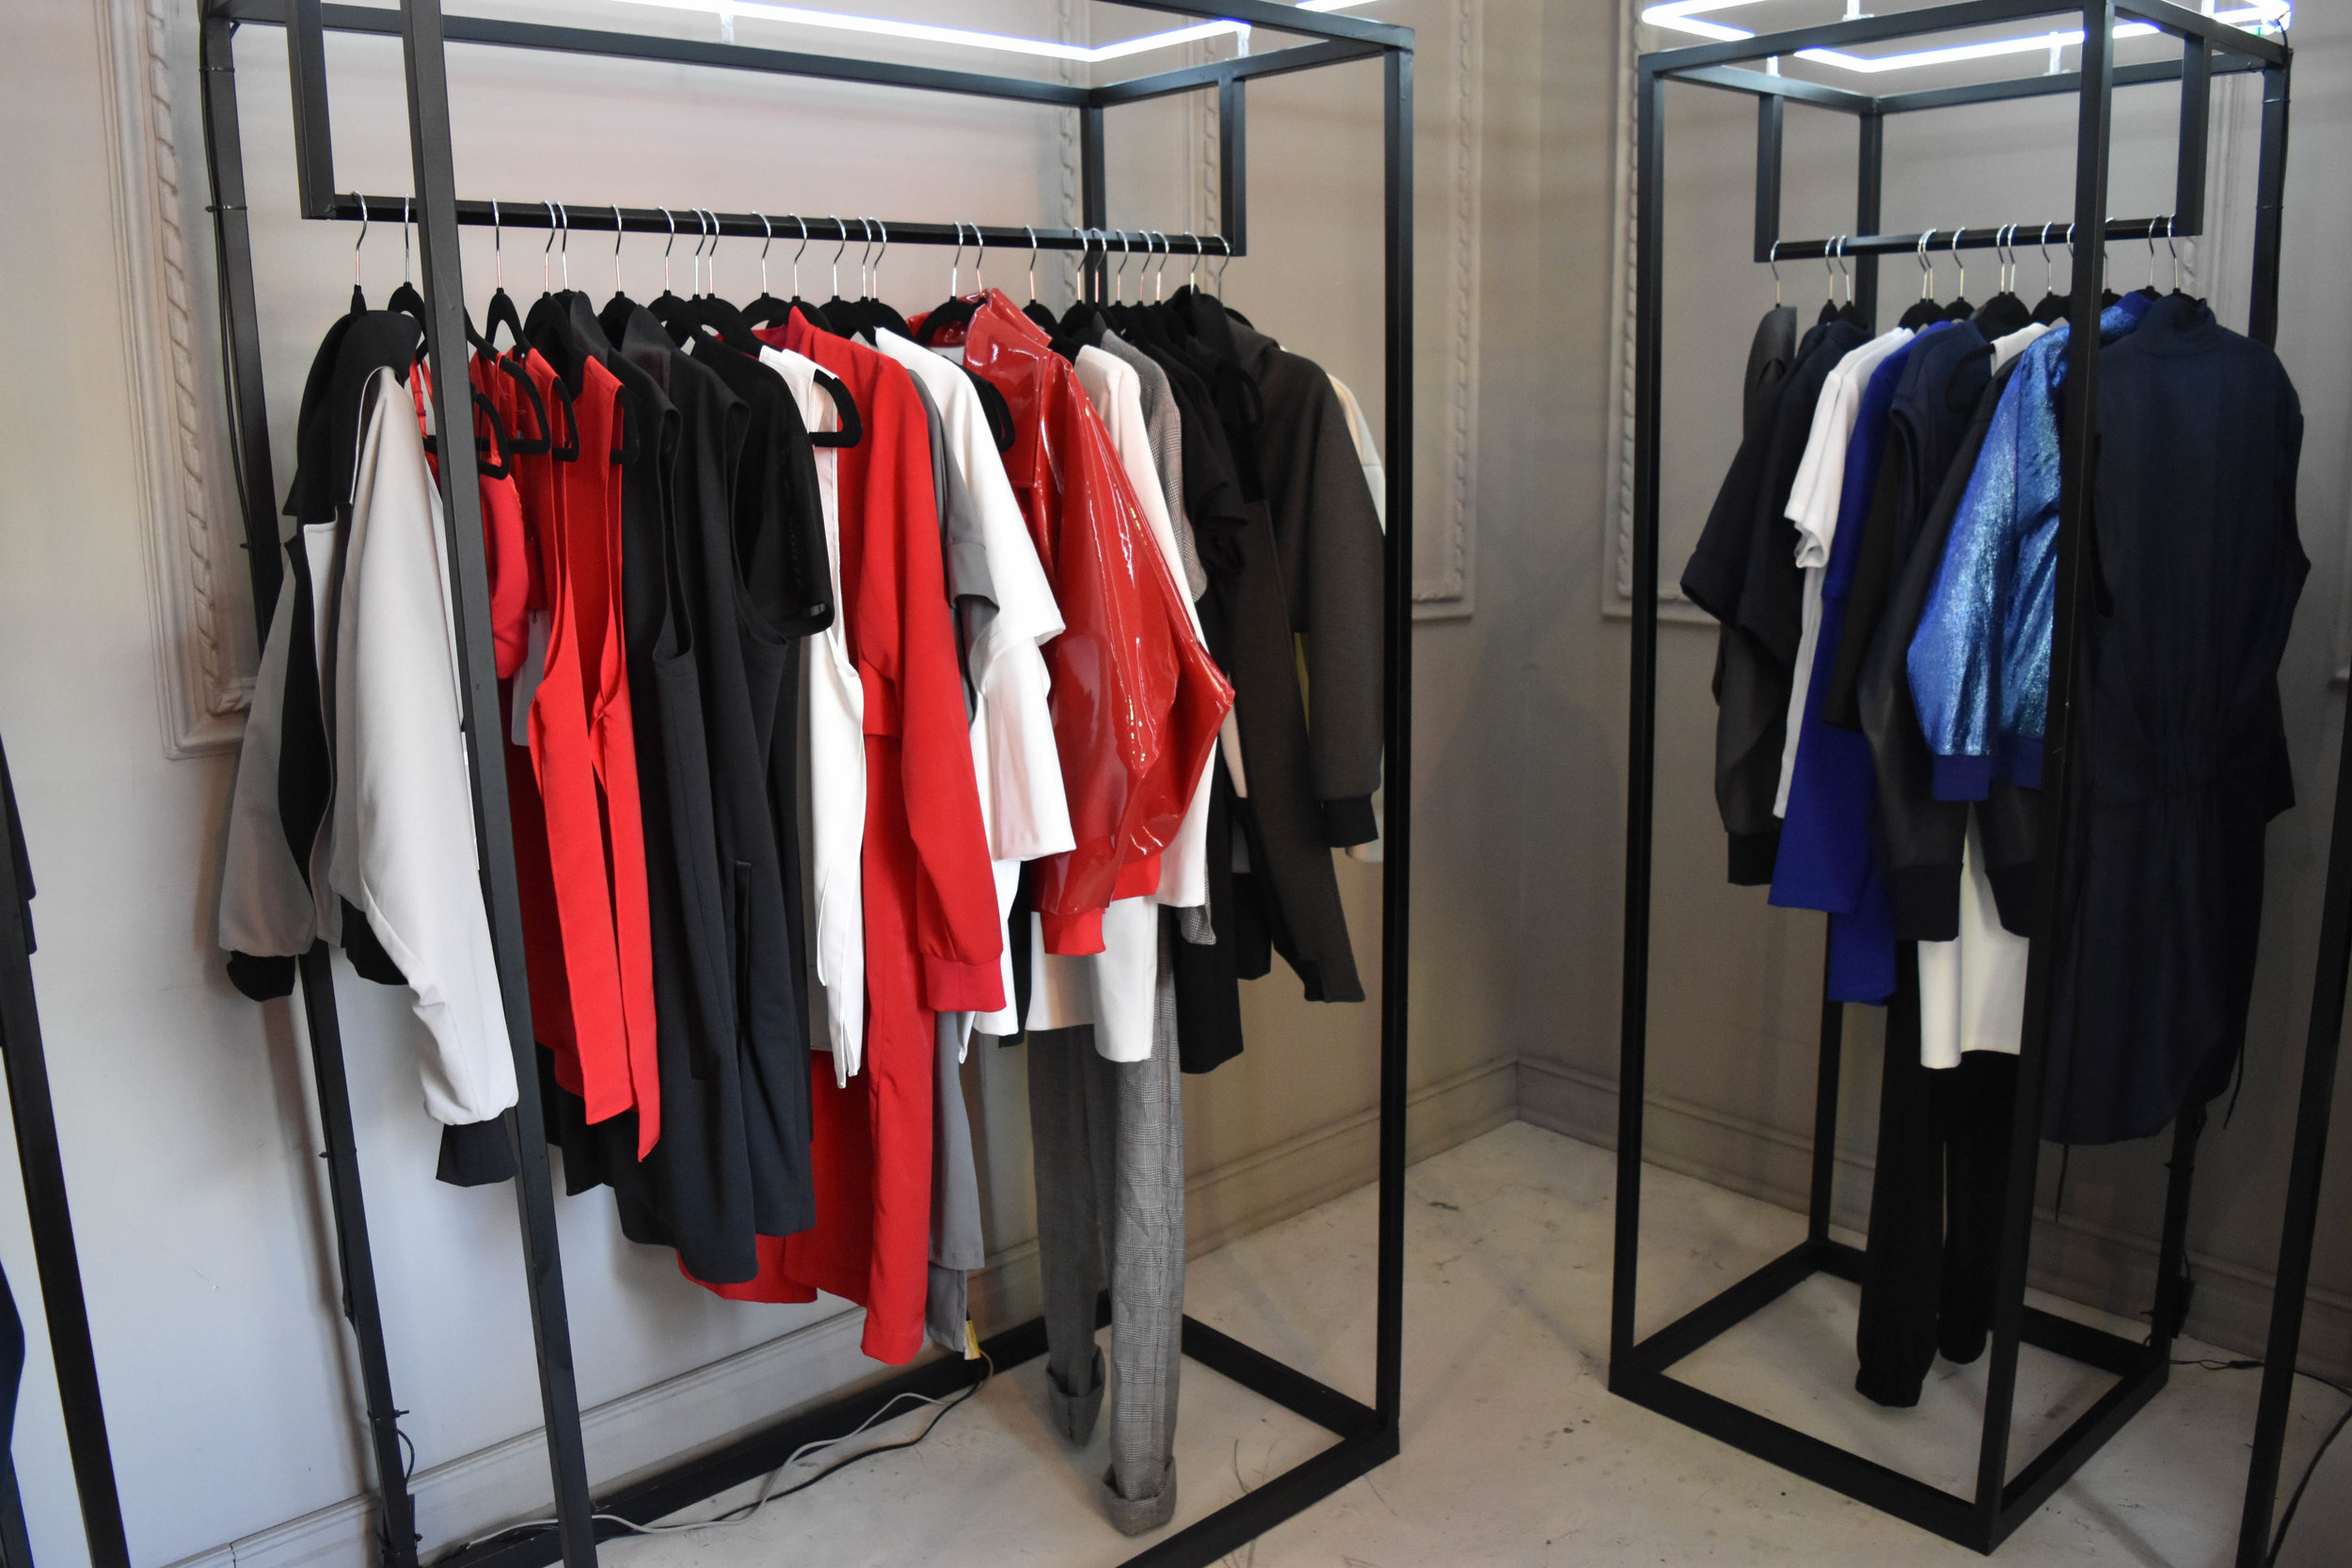 Mexico-based brand  Ocelote  specializes in high quality basic wear…but the clothes ain't basic with fabrics like velvets and synthetic patent leather.